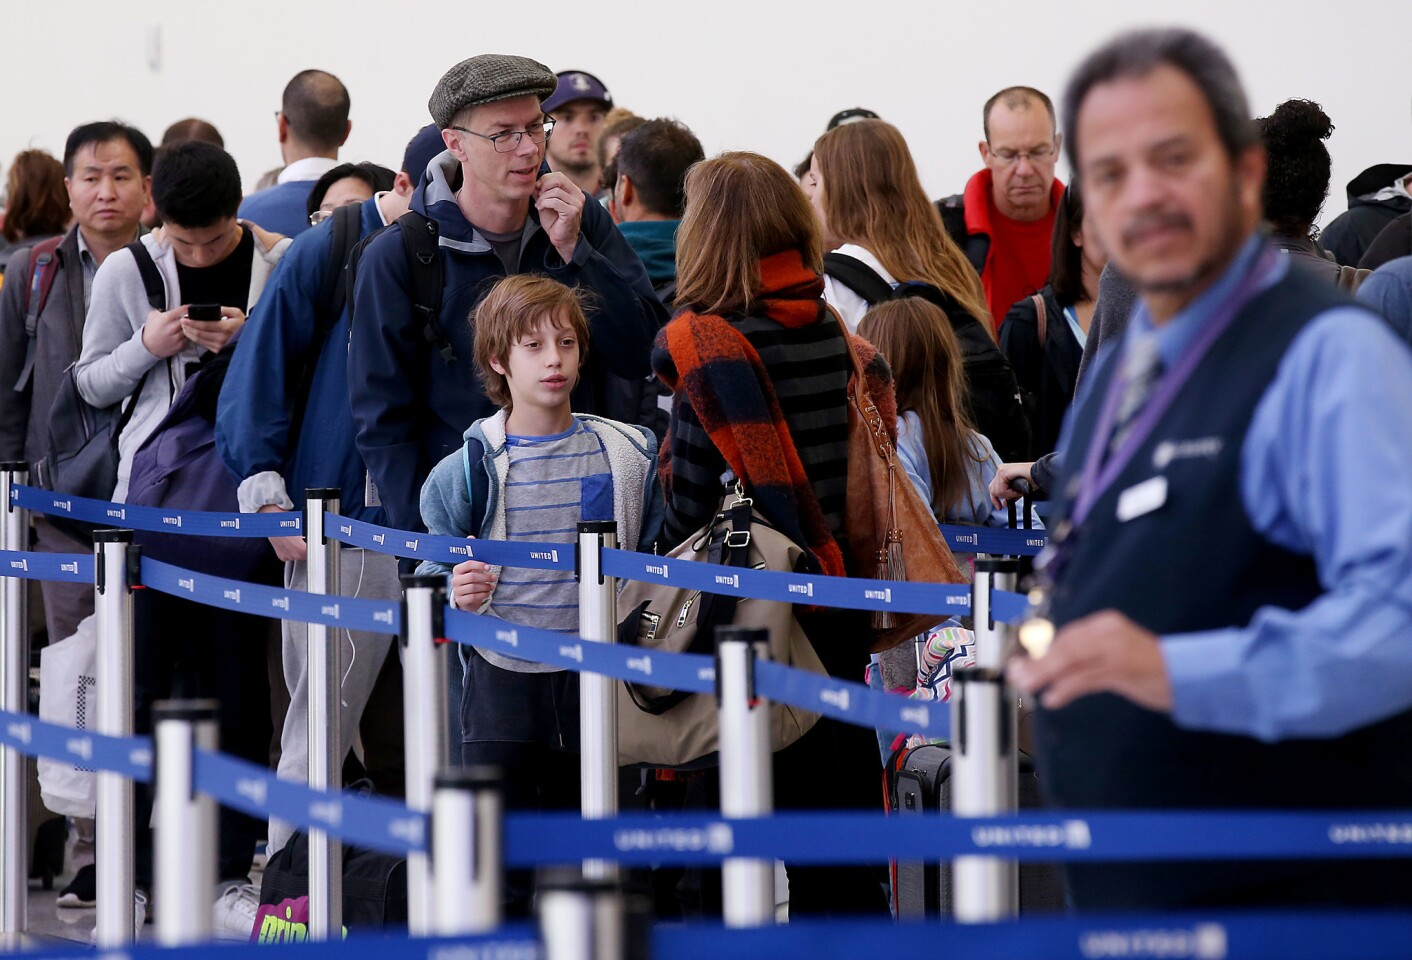 Holiday travelers line up for security screenings in Terminal 7 at LAX on Thursday. Airport officials said nearly 230 flights have been either canceled or delayed.